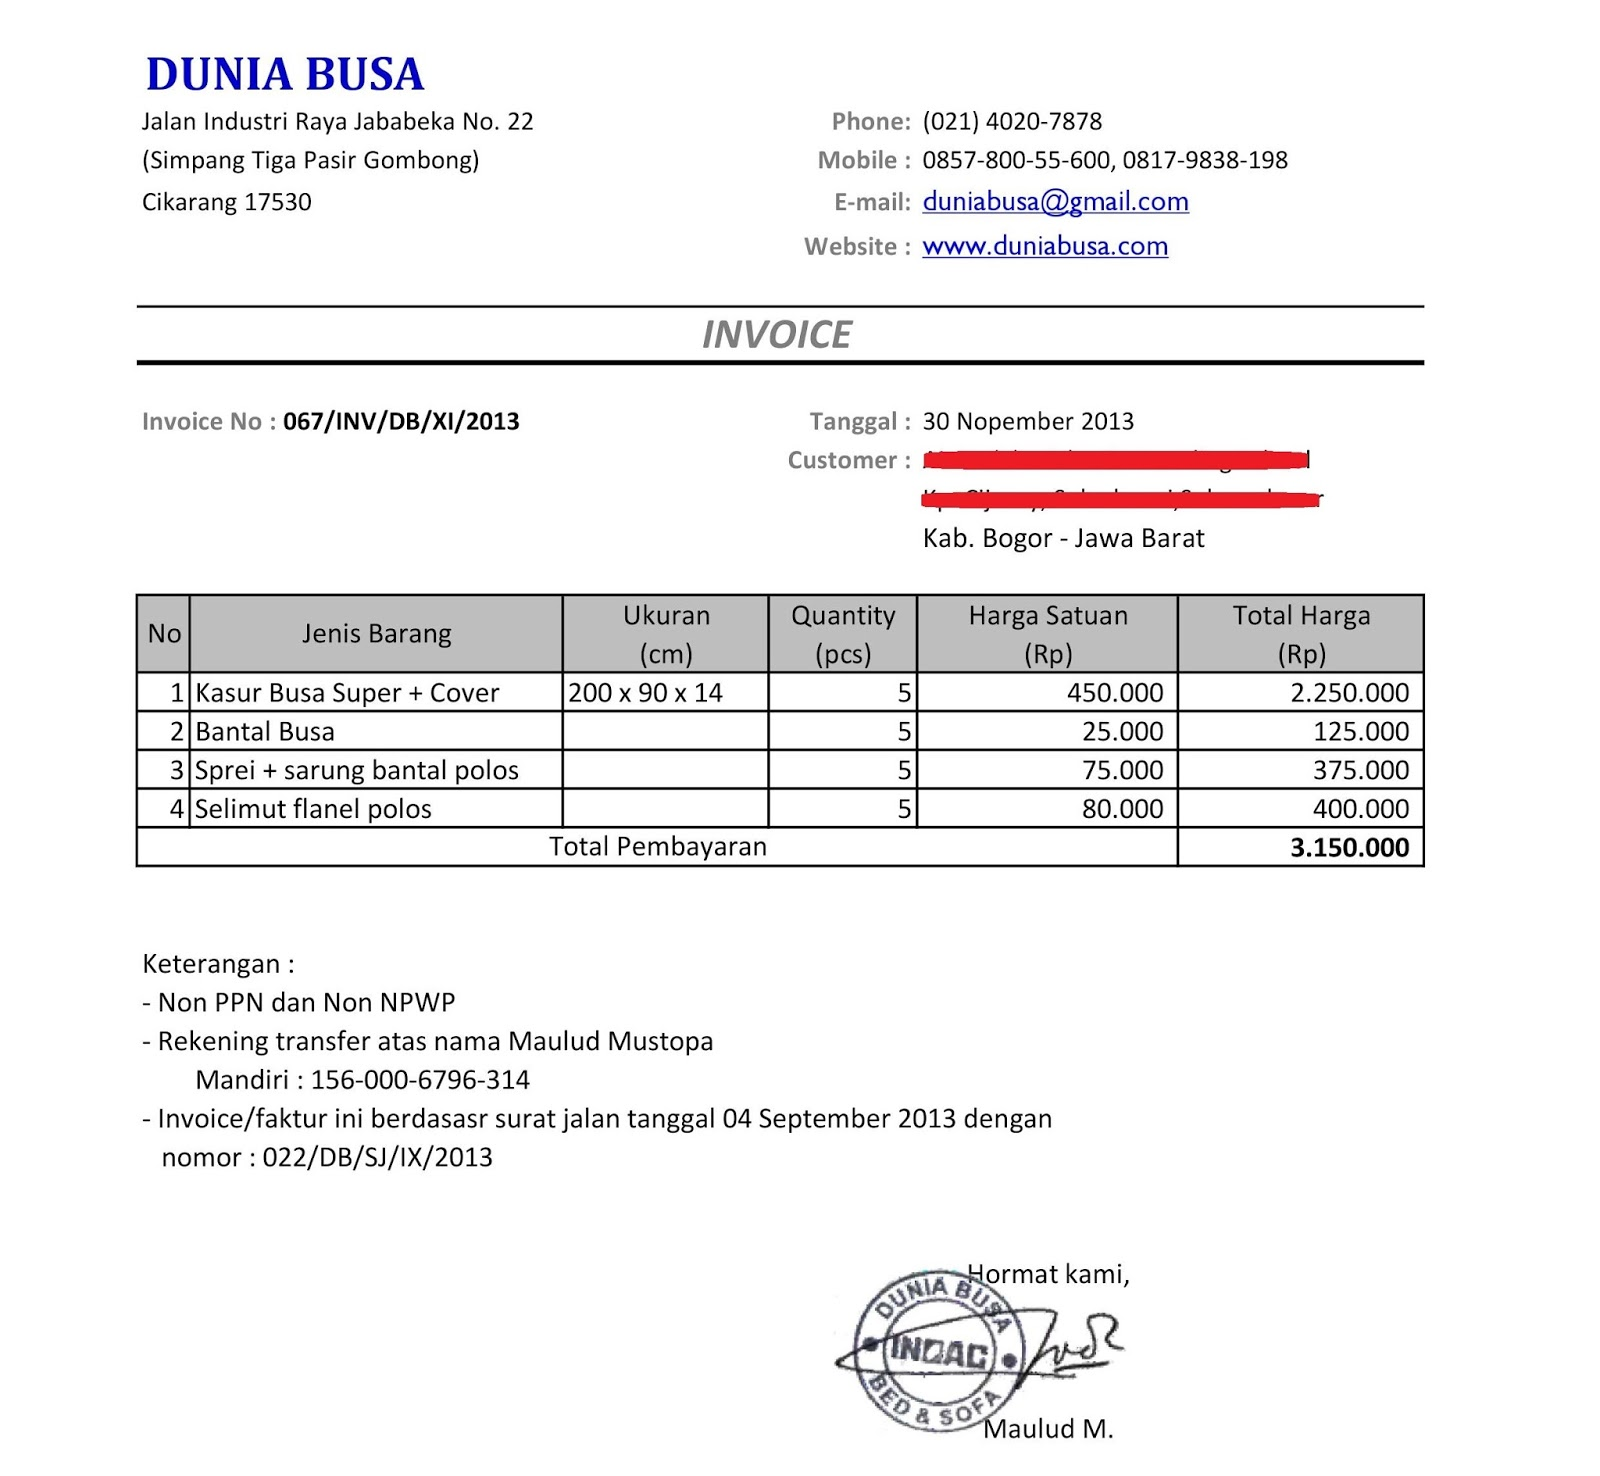 Helpingtohealus  Terrific Free Invoice Online  Create Invoice Online  Invoice Template  With Goodlooking Contoh Format Invoice Atau Surat Tagihan  Brankas Arsip  Free Invoice Online With Enchanting Invoice App For Mac Also Cleaning Invoice Sample In Addition How To Do Invoice And House Cleaning Invoice Template As Well As Invoice Printable Additionally Invoicing Services From Sklepco With Helpingtohealus  Goodlooking Free Invoice Online  Create Invoice Online  Invoice Template  With Enchanting Contoh Format Invoice Atau Surat Tagihan  Brankas Arsip  Free Invoice Online And Terrific Invoice App For Mac Also Cleaning Invoice Sample In Addition How To Do Invoice From Sklepco